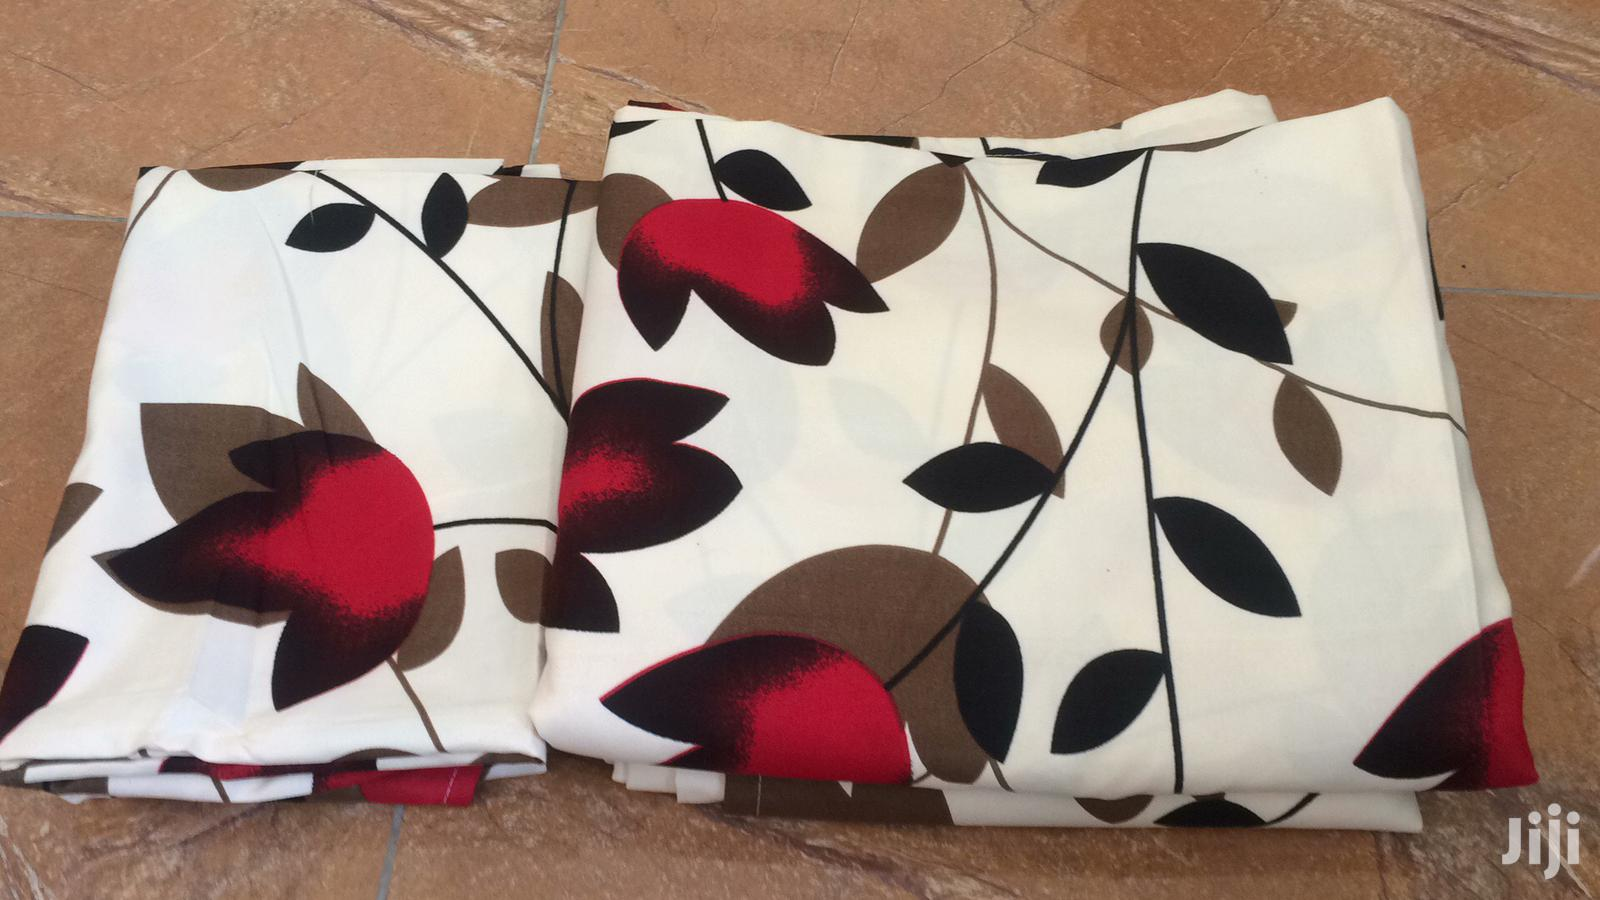 Egyptian Pure Cotton Bedsheet Sets (6 Pcs) 8x8 | Home Accessories for sale in Mvita, Mombasa, Kenya